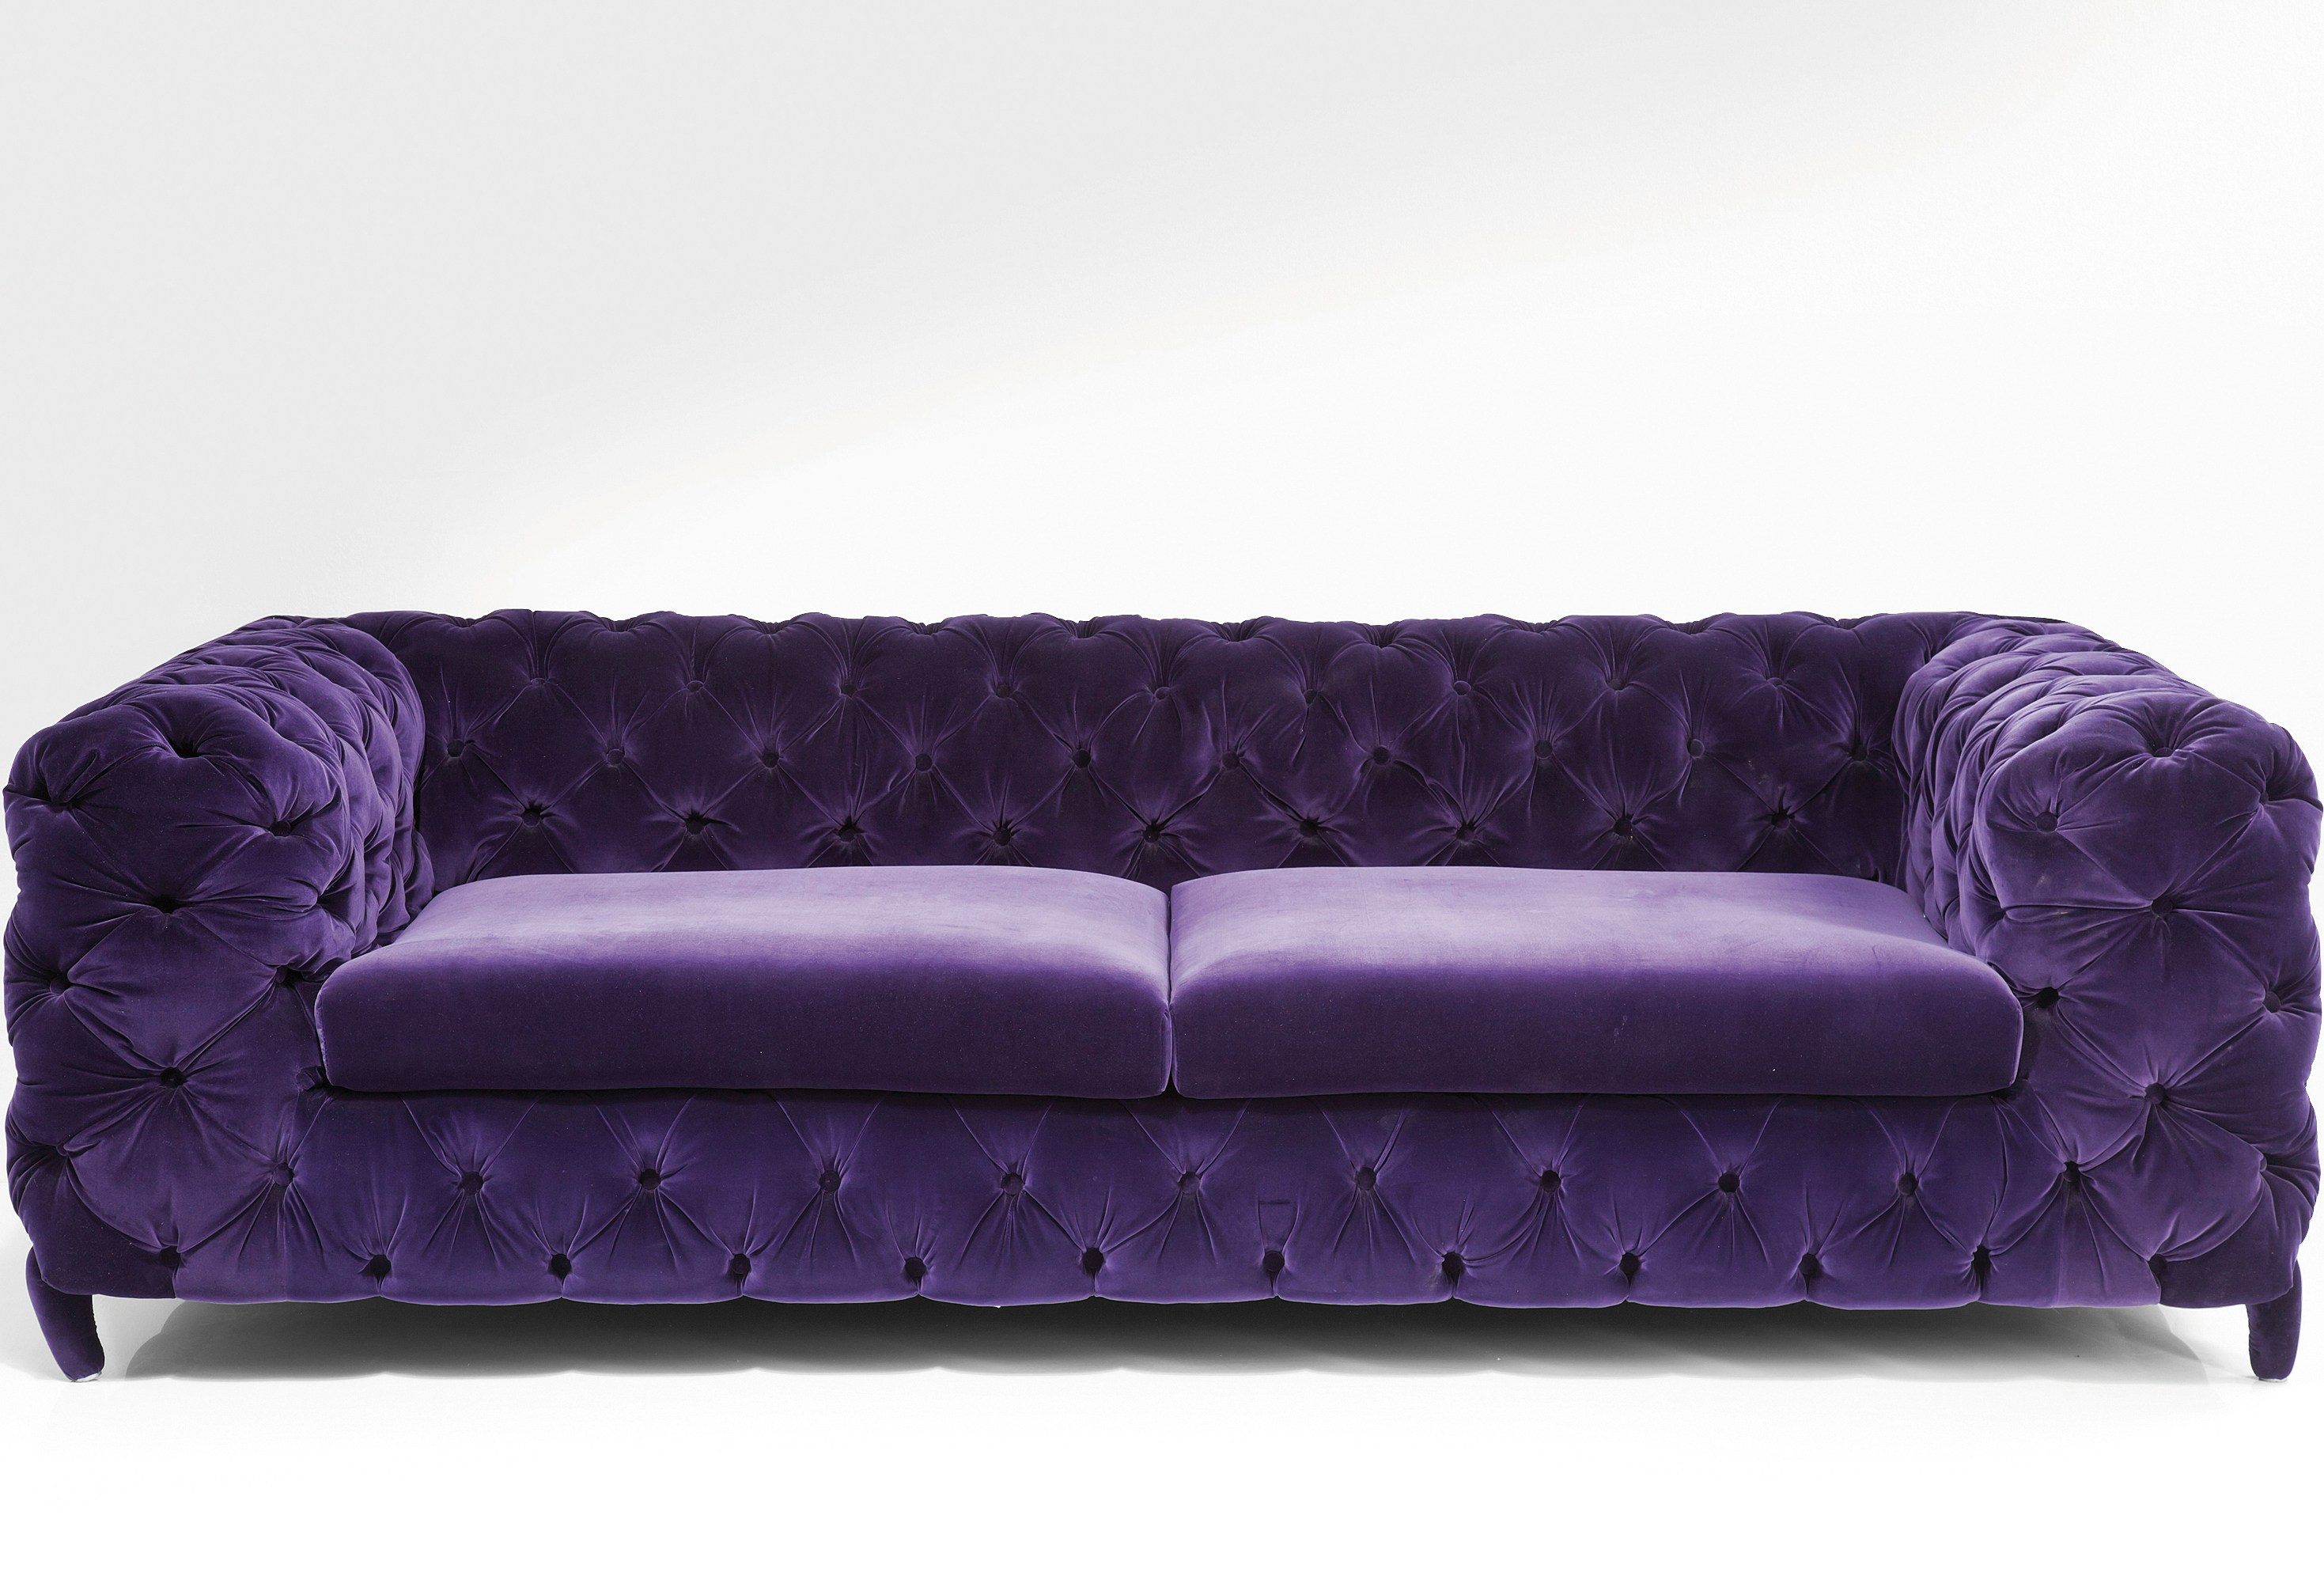 Purple Sofa Decorating Ideas | Mauve Leather Sofa | Purple Sofa